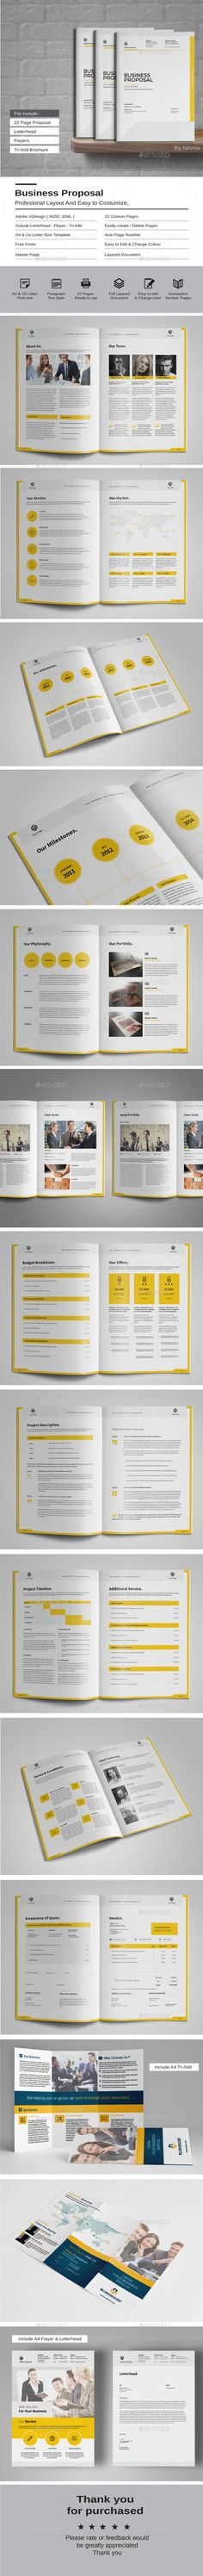 Cloud Sever Proposal Template Template, Proposals and Customize - business proposals format